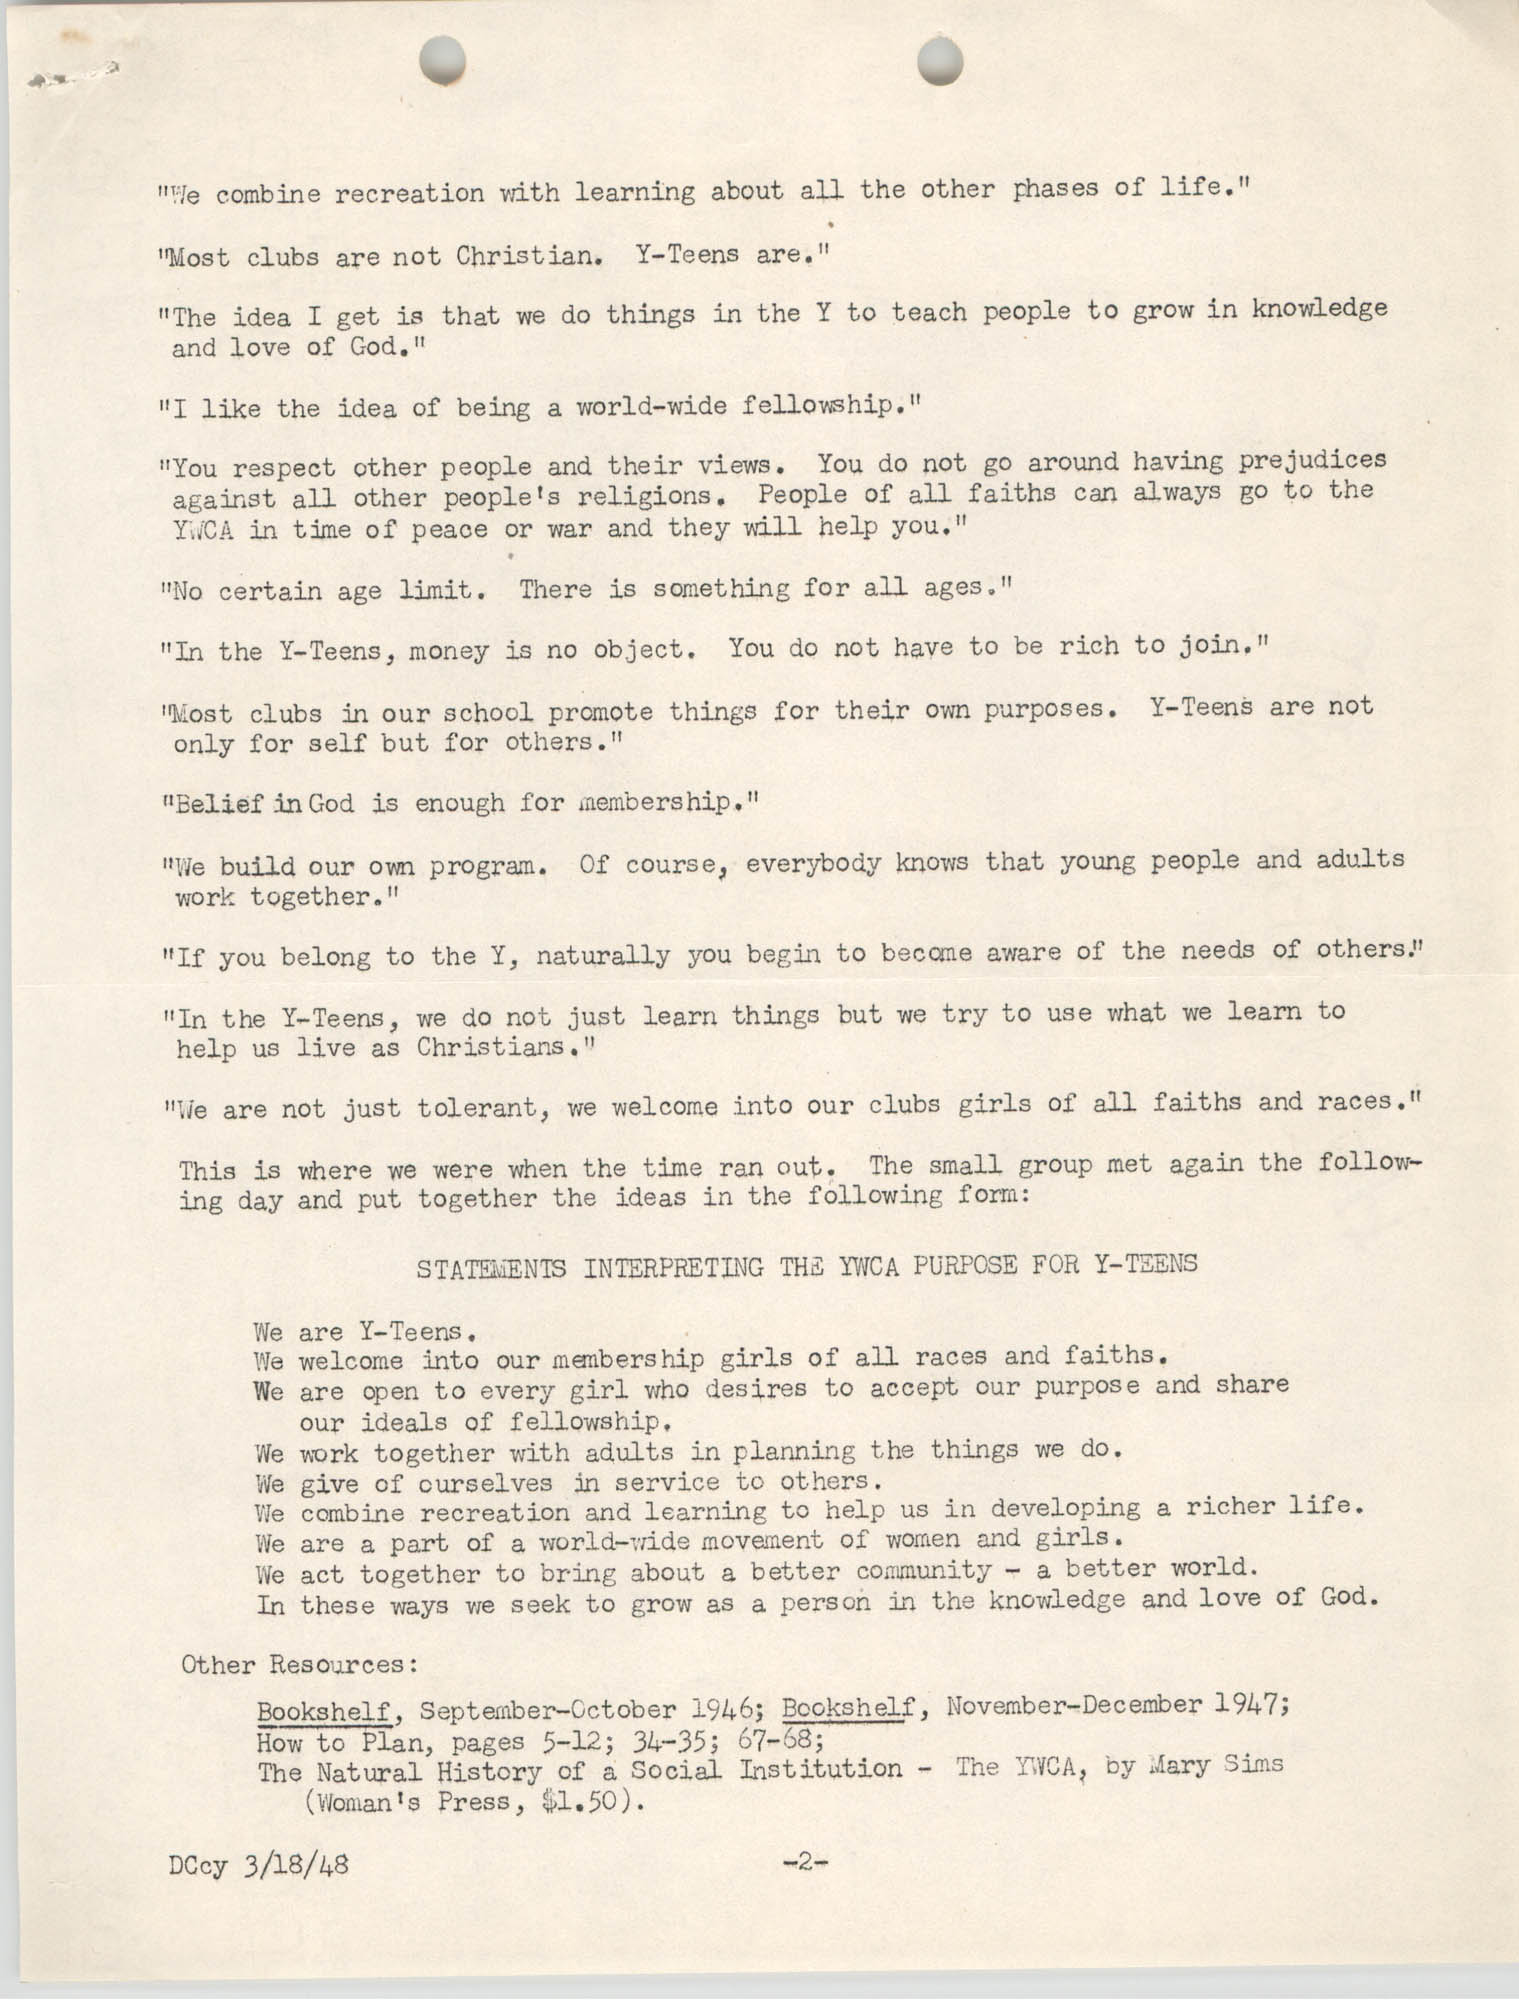 Summary and Discussion on Interpreting the Y.W.C.A. Purpose to Y-Teens, June 1947, Page 2